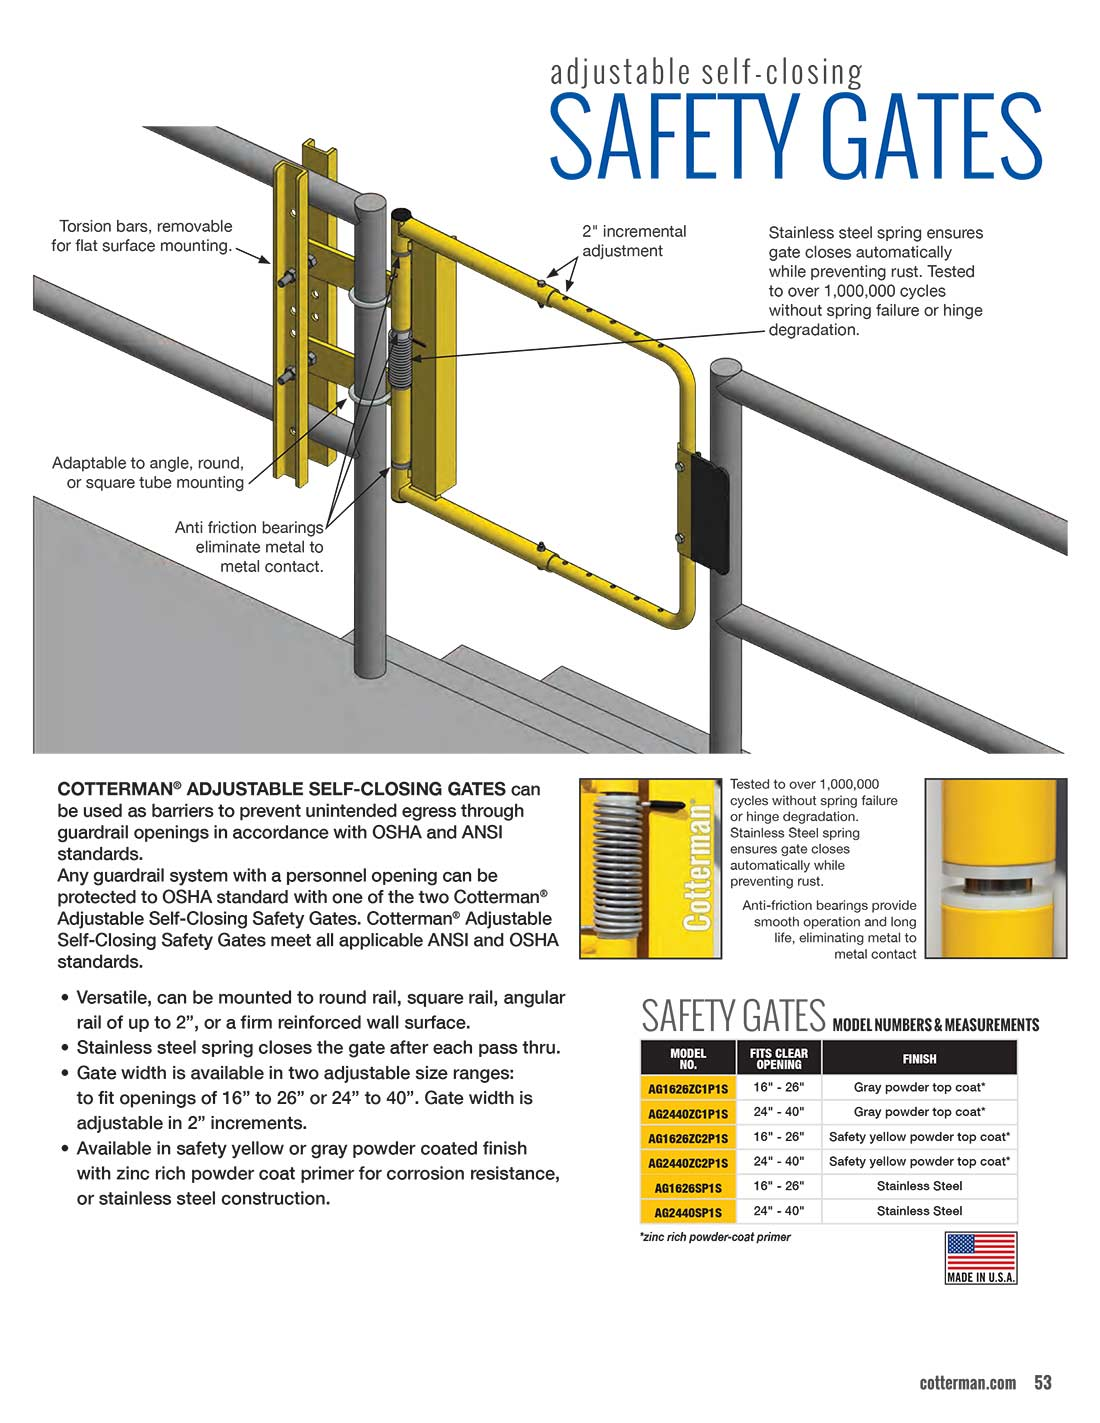 Self-Closing Safety Gate Extended Information